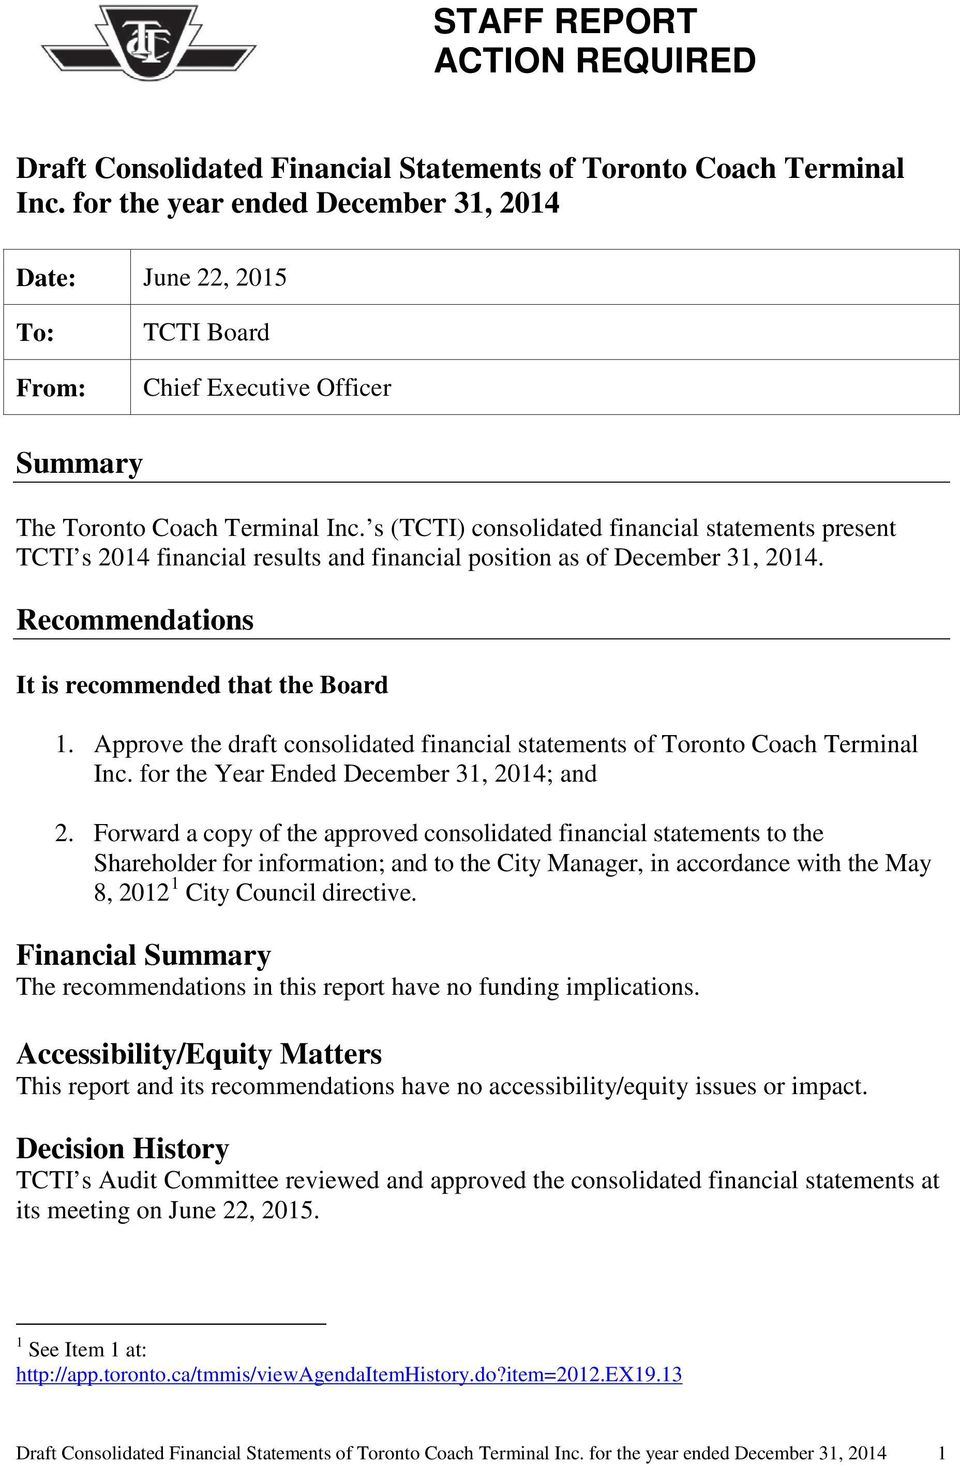 s (TCTI) consolidated financial statements present TCTI s 2014 financial results and financial position as of December 31, 2014. Recommendations It is recommended that the Board 1.